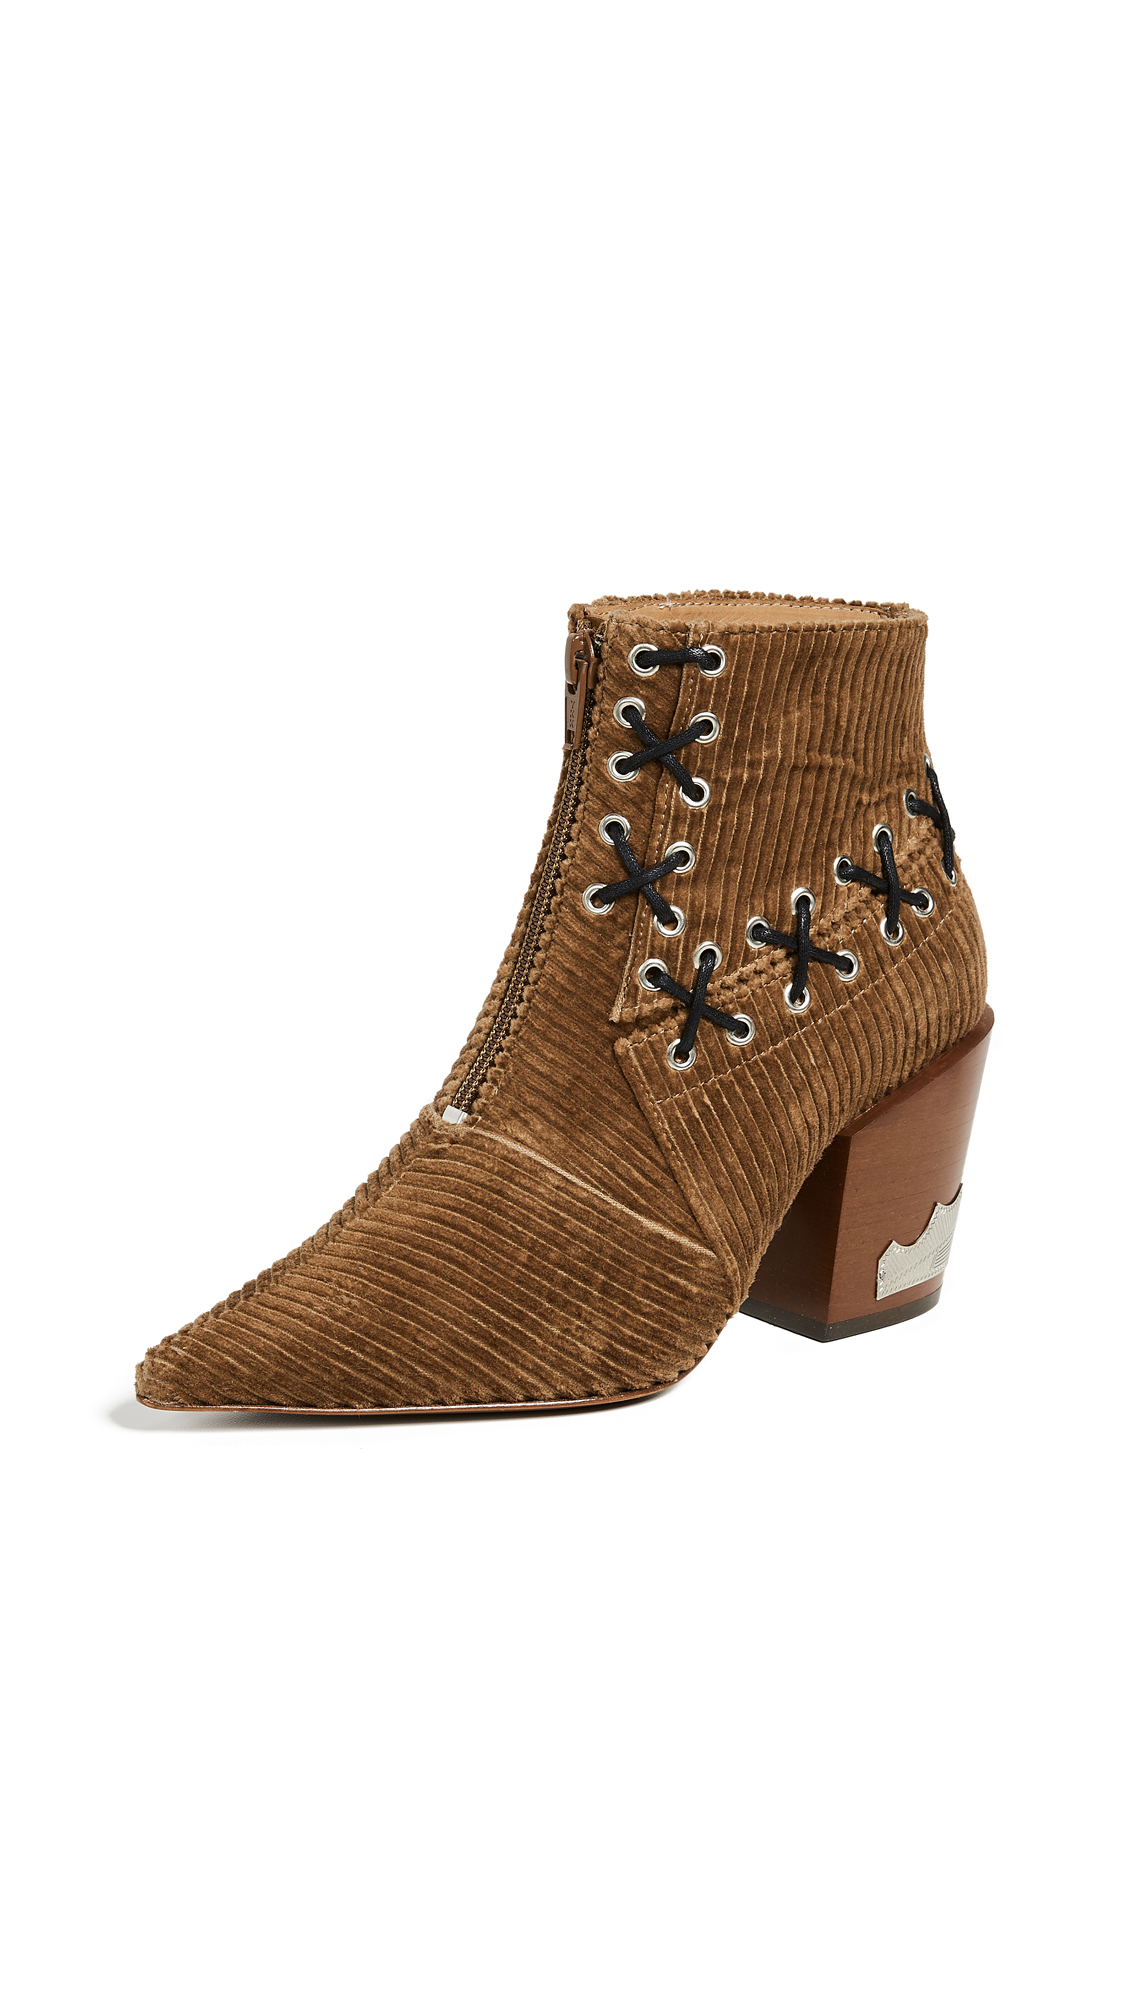 Toga Pulla Stitch Corduroy Bootie In Brown